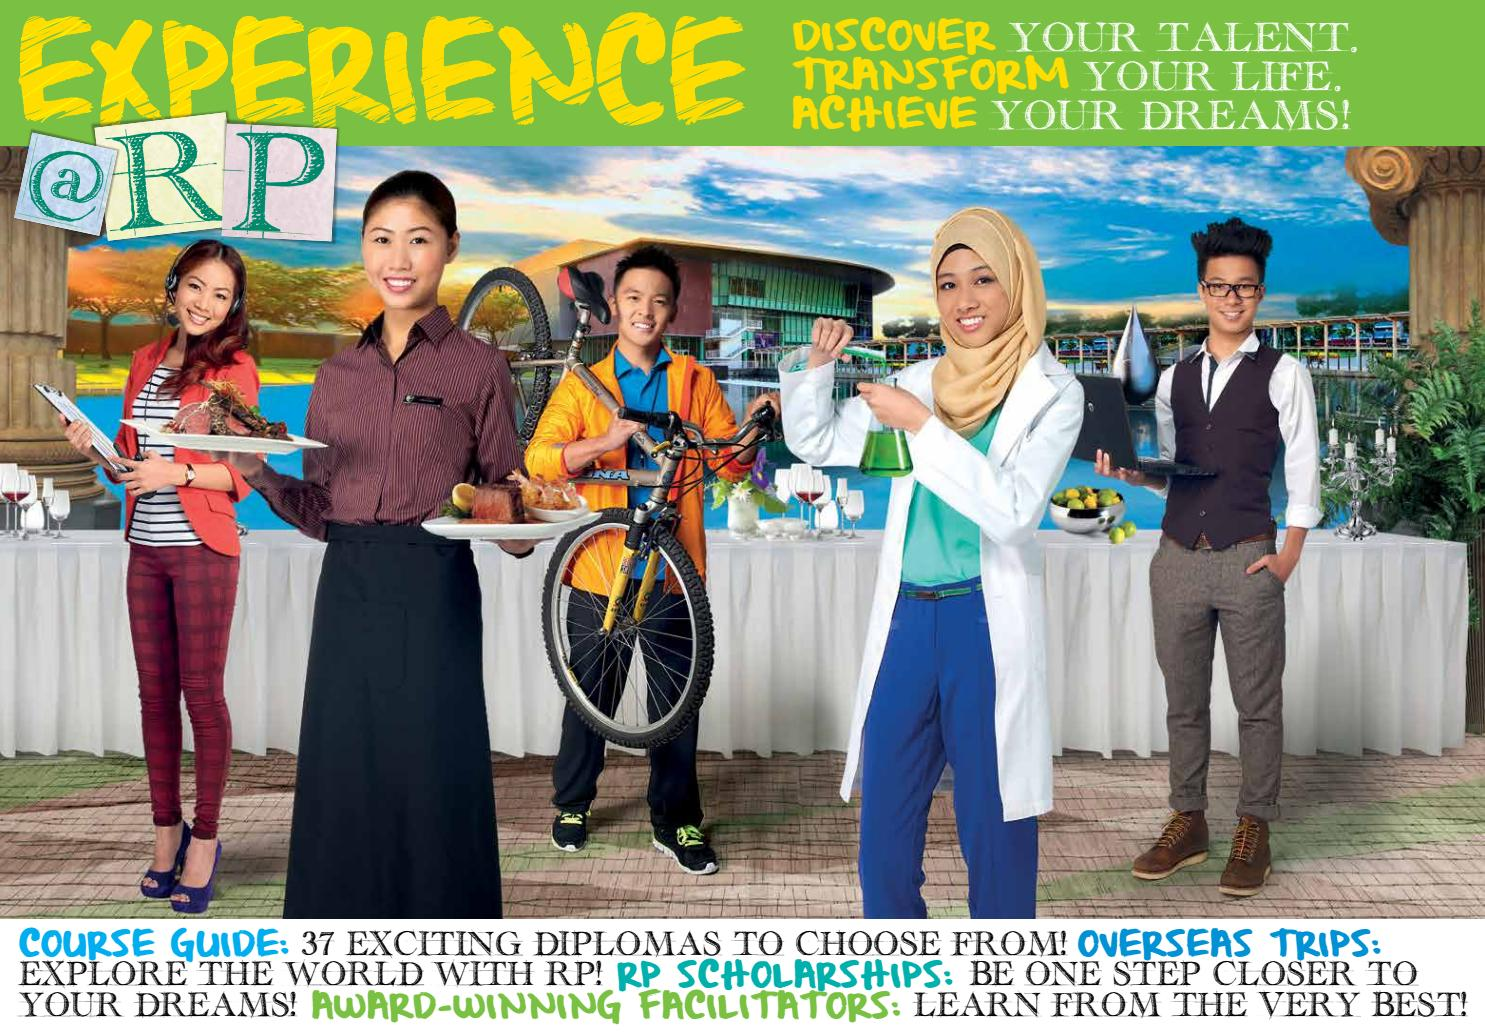 Experience@RP - September 2012 by Republic Polytechnic - issuu